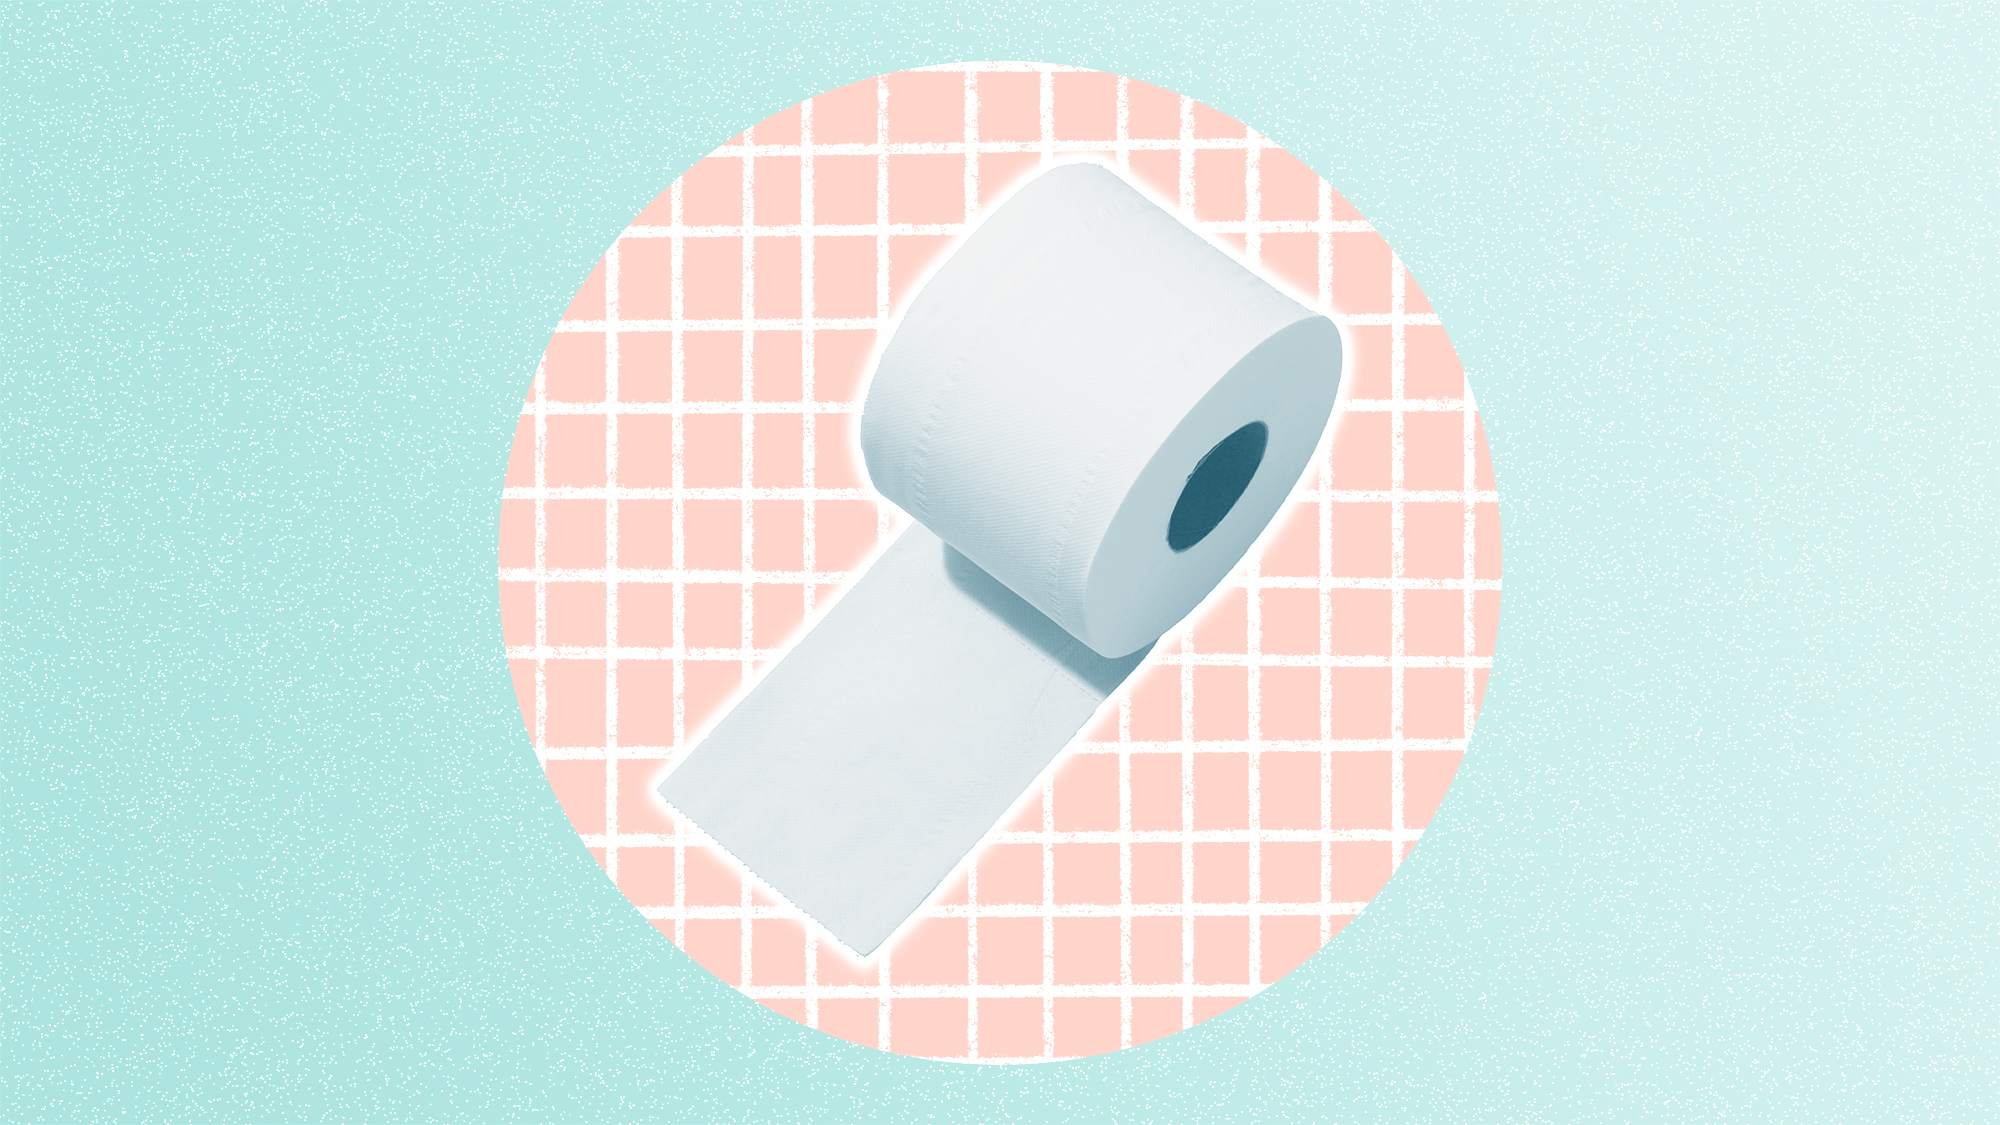 Toilet paper roll on a designed background